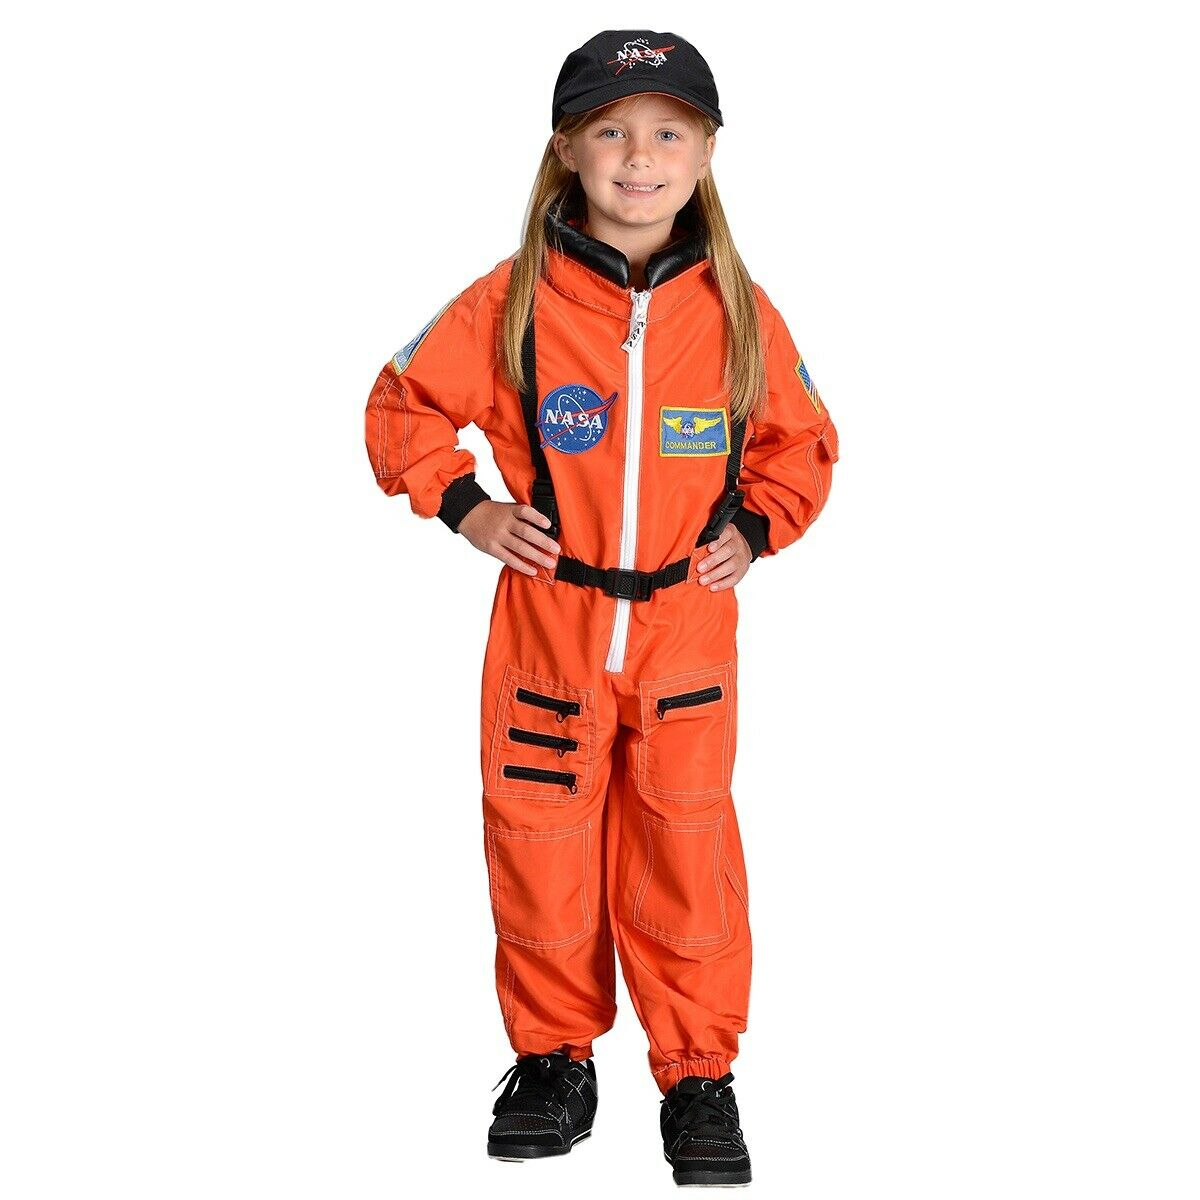 Aeromax Jr Astronaught Suit With Cap 8 - 10 Years